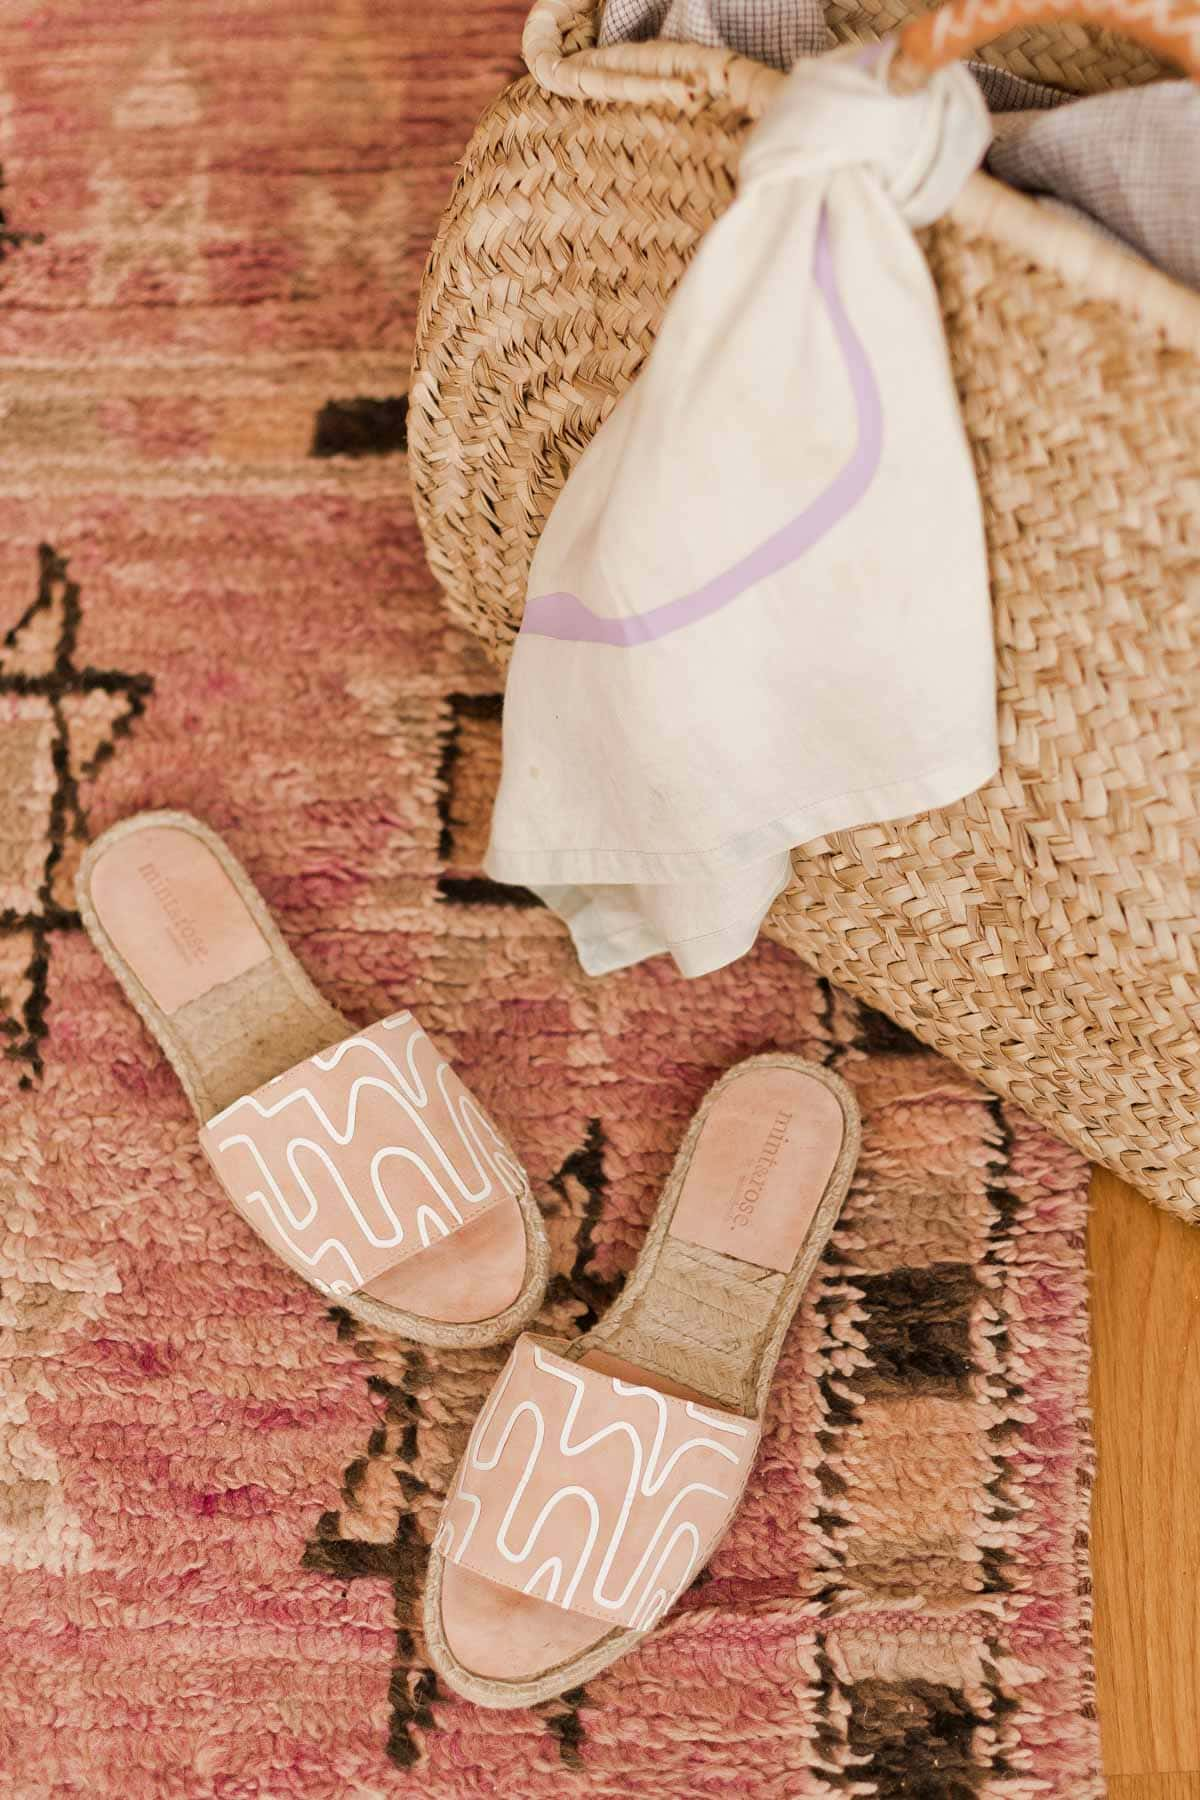 Pink groovy print sandals on a Moroccan rug with a straw bag.